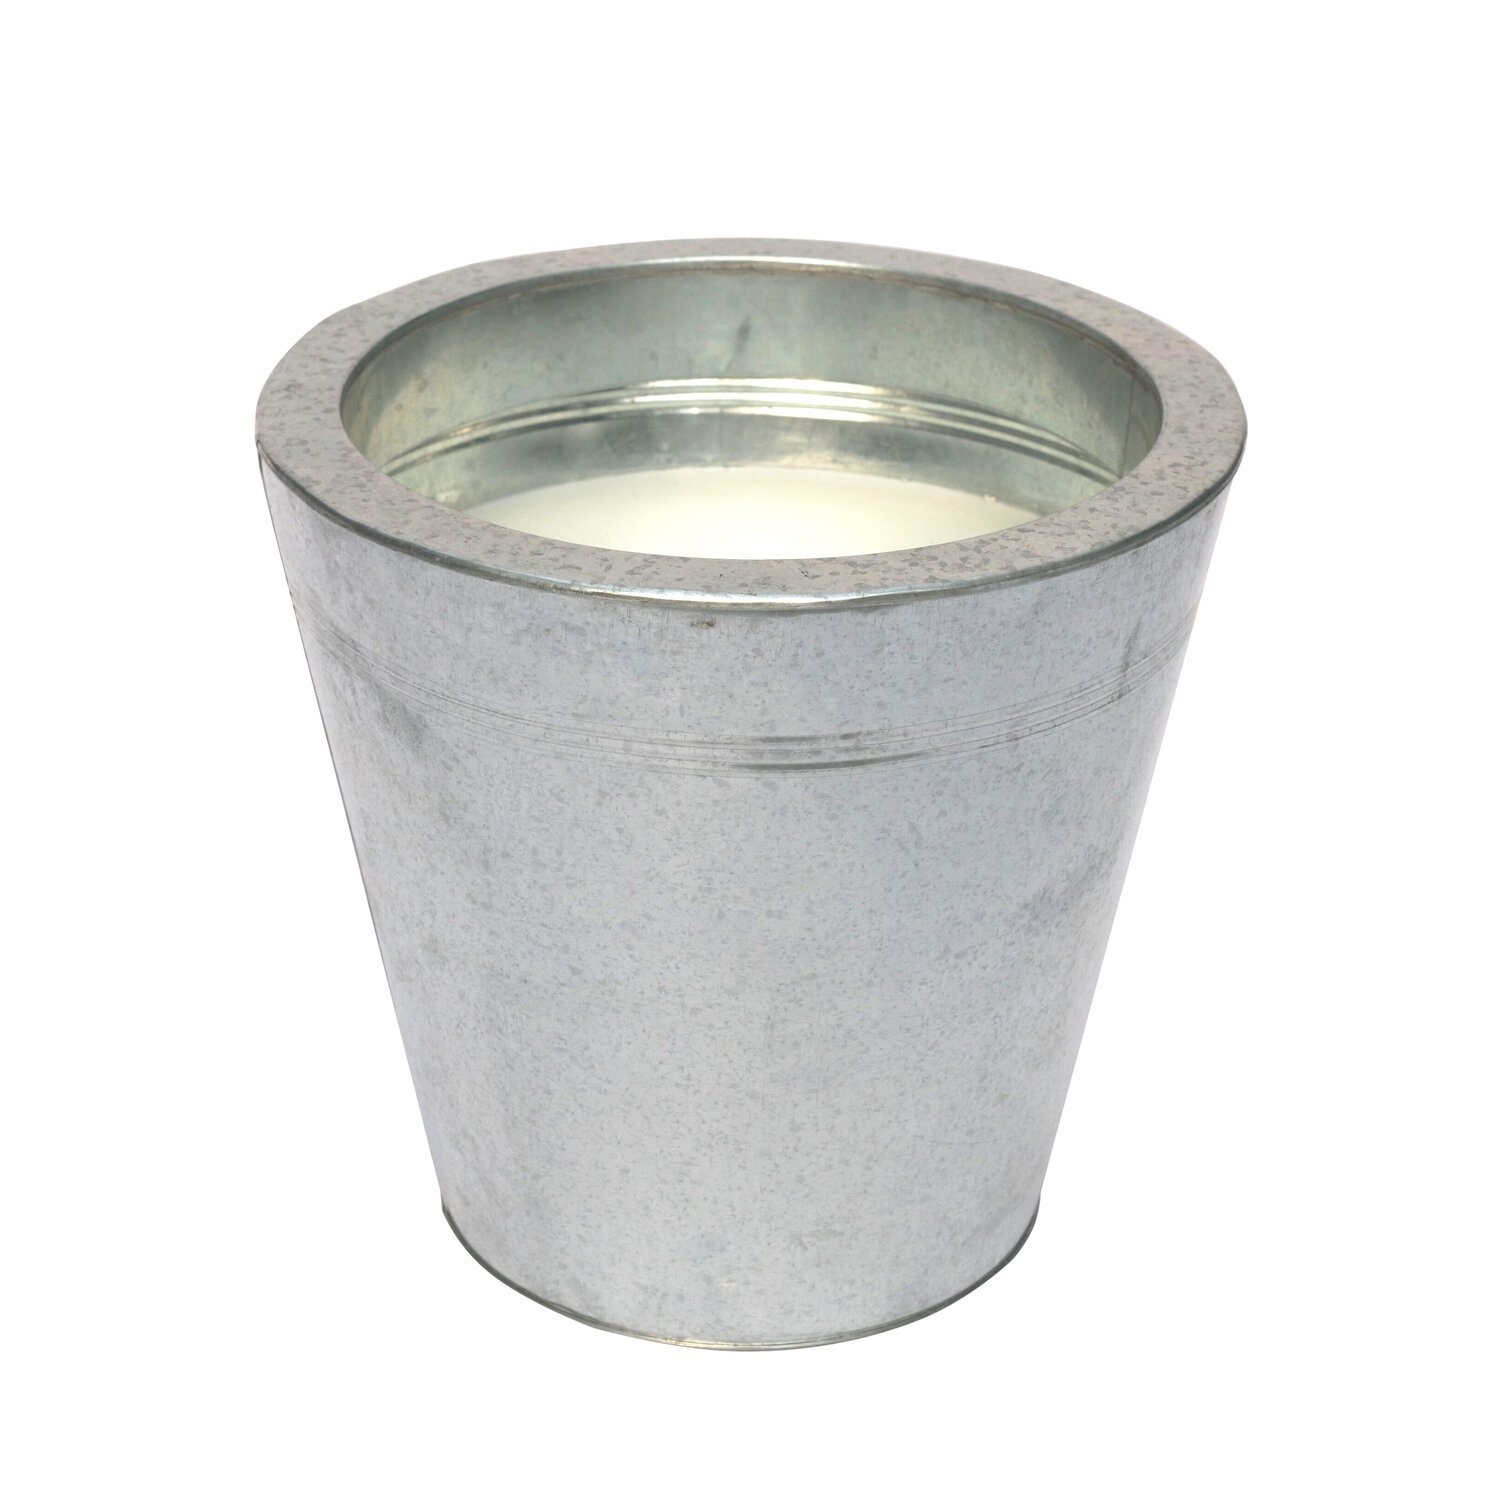 265 OZ Citronella Patio King Galvanized Bucket